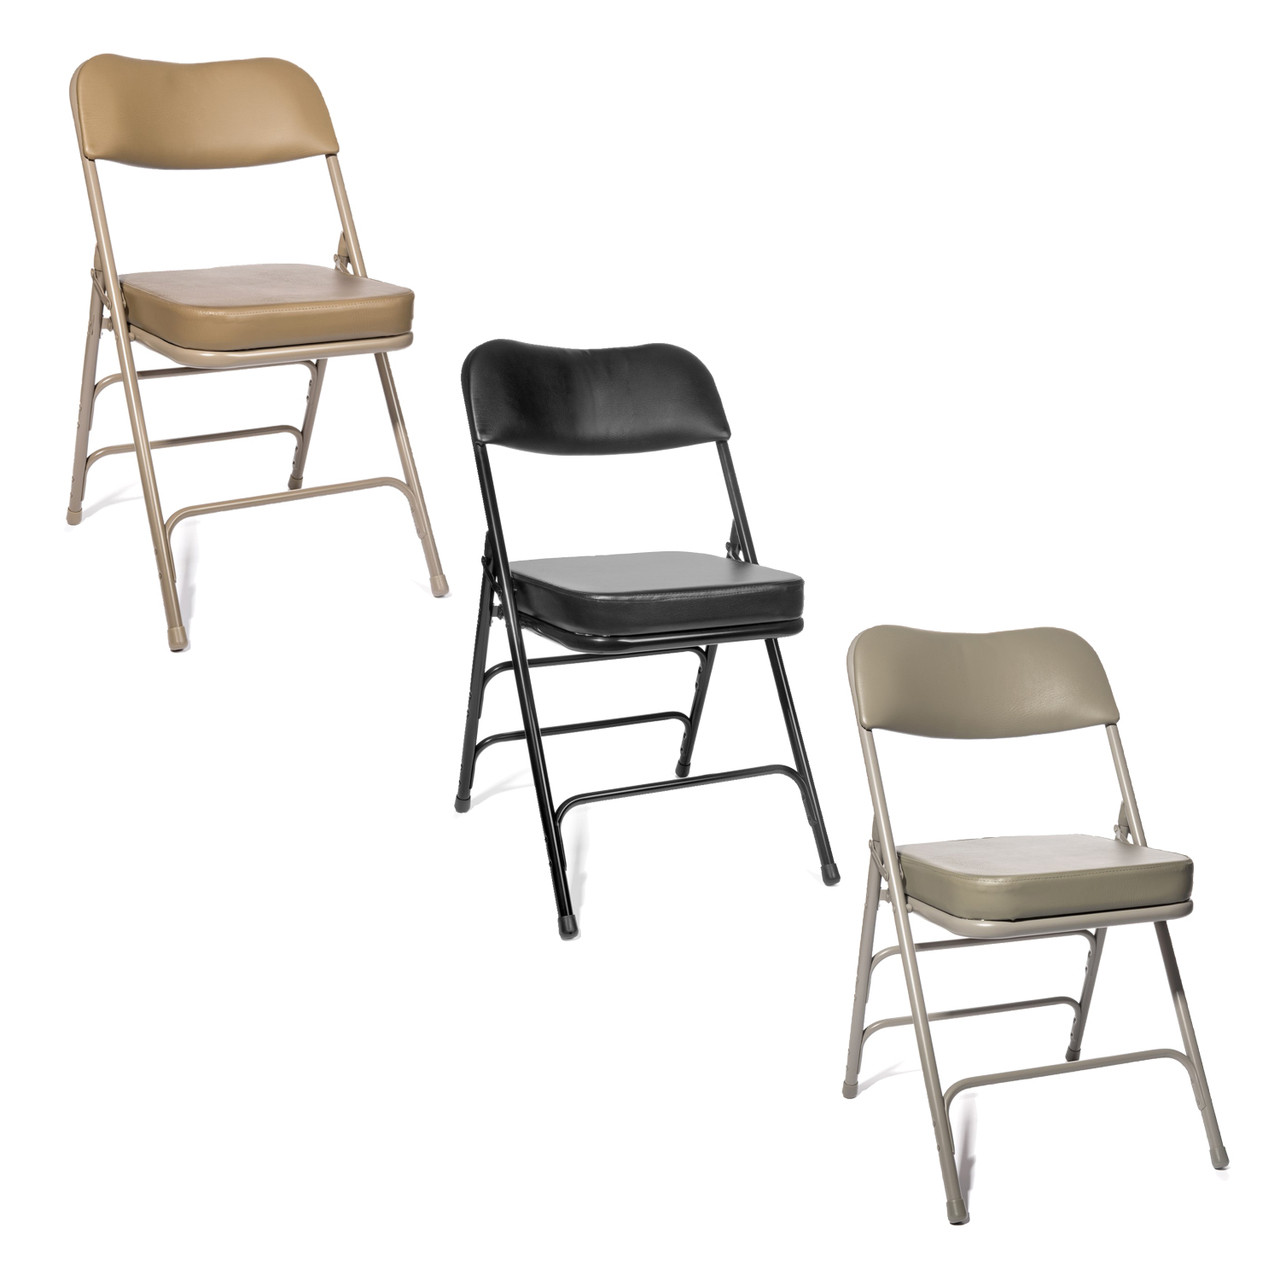 Tremendous Xl Series 2 Inch Vinyl Padded Folding Chair 2 Taller Back Quad Hinging Triple Cross Braces Download Free Architecture Designs Itiscsunscenecom